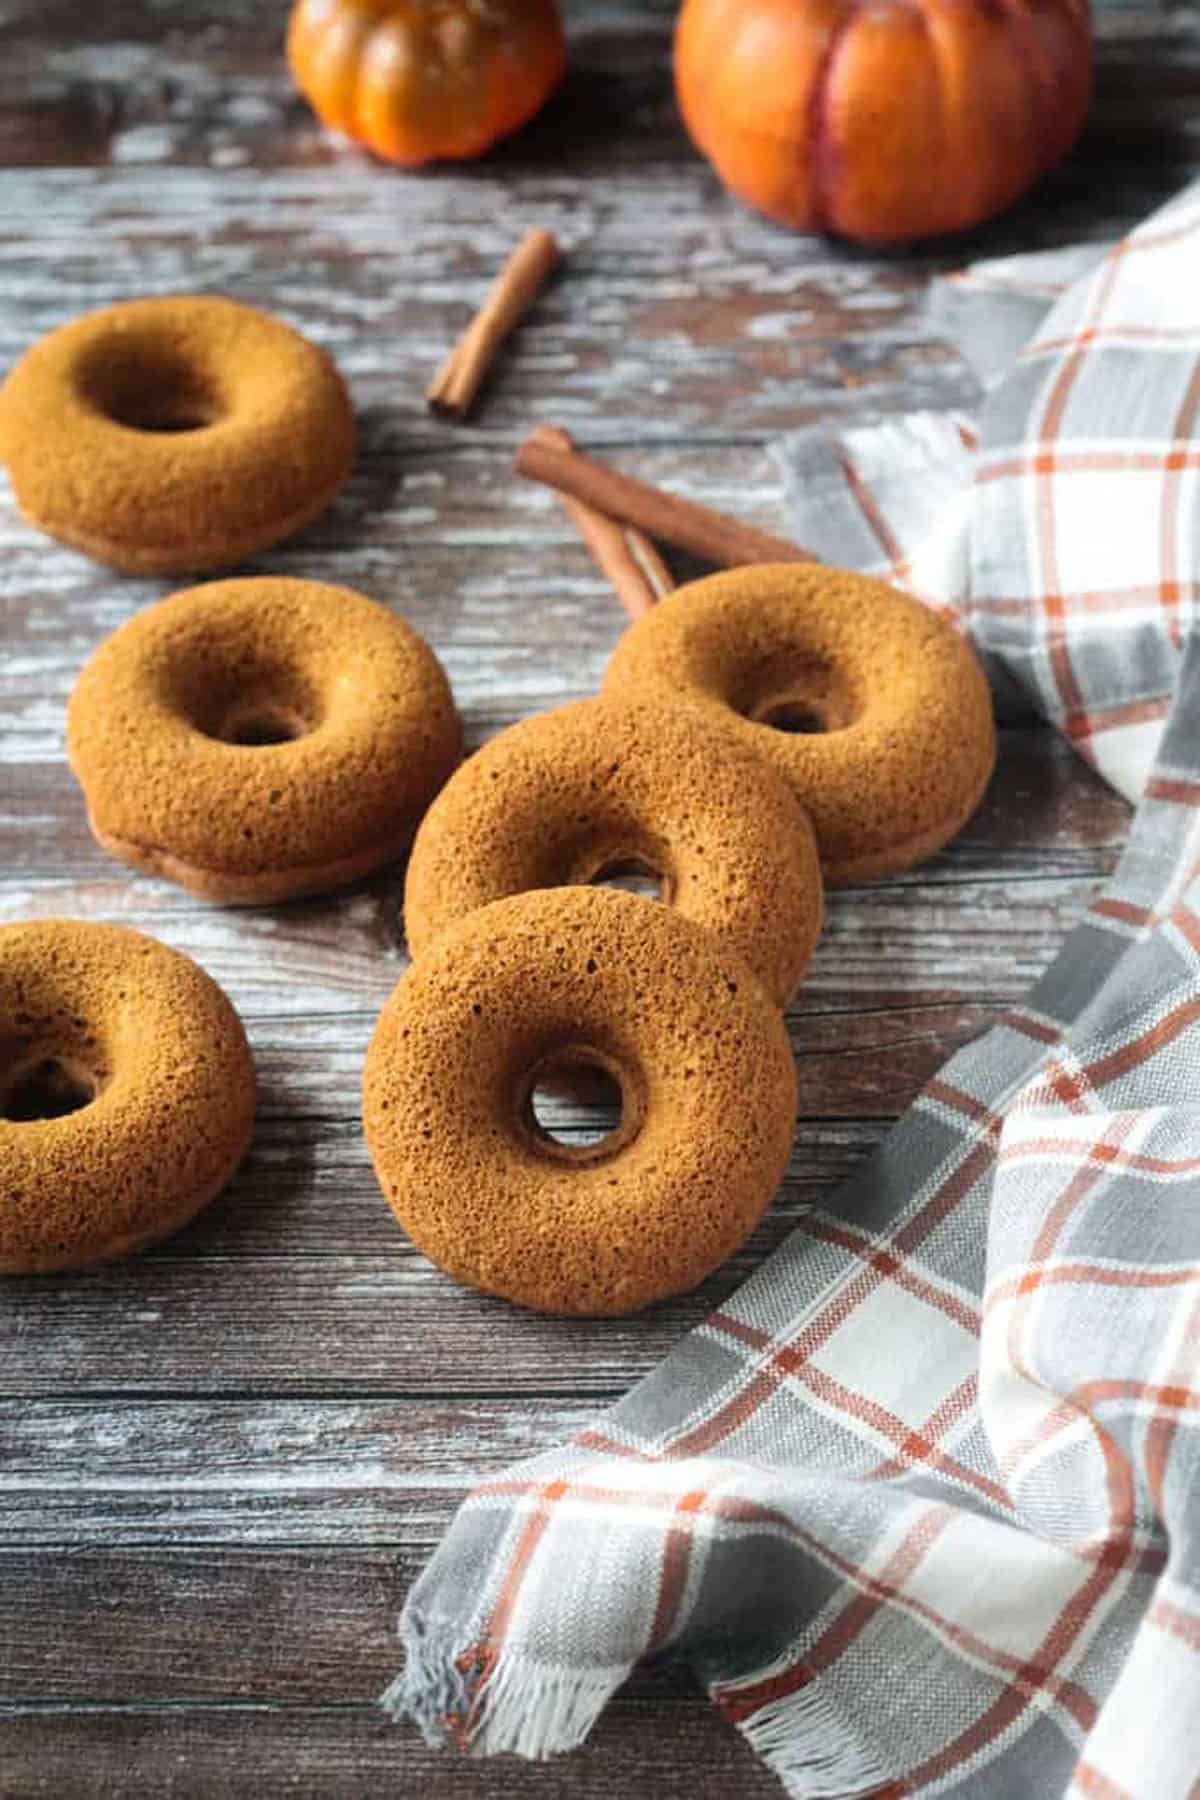 6 donuts lying sporadically on a wooden background.